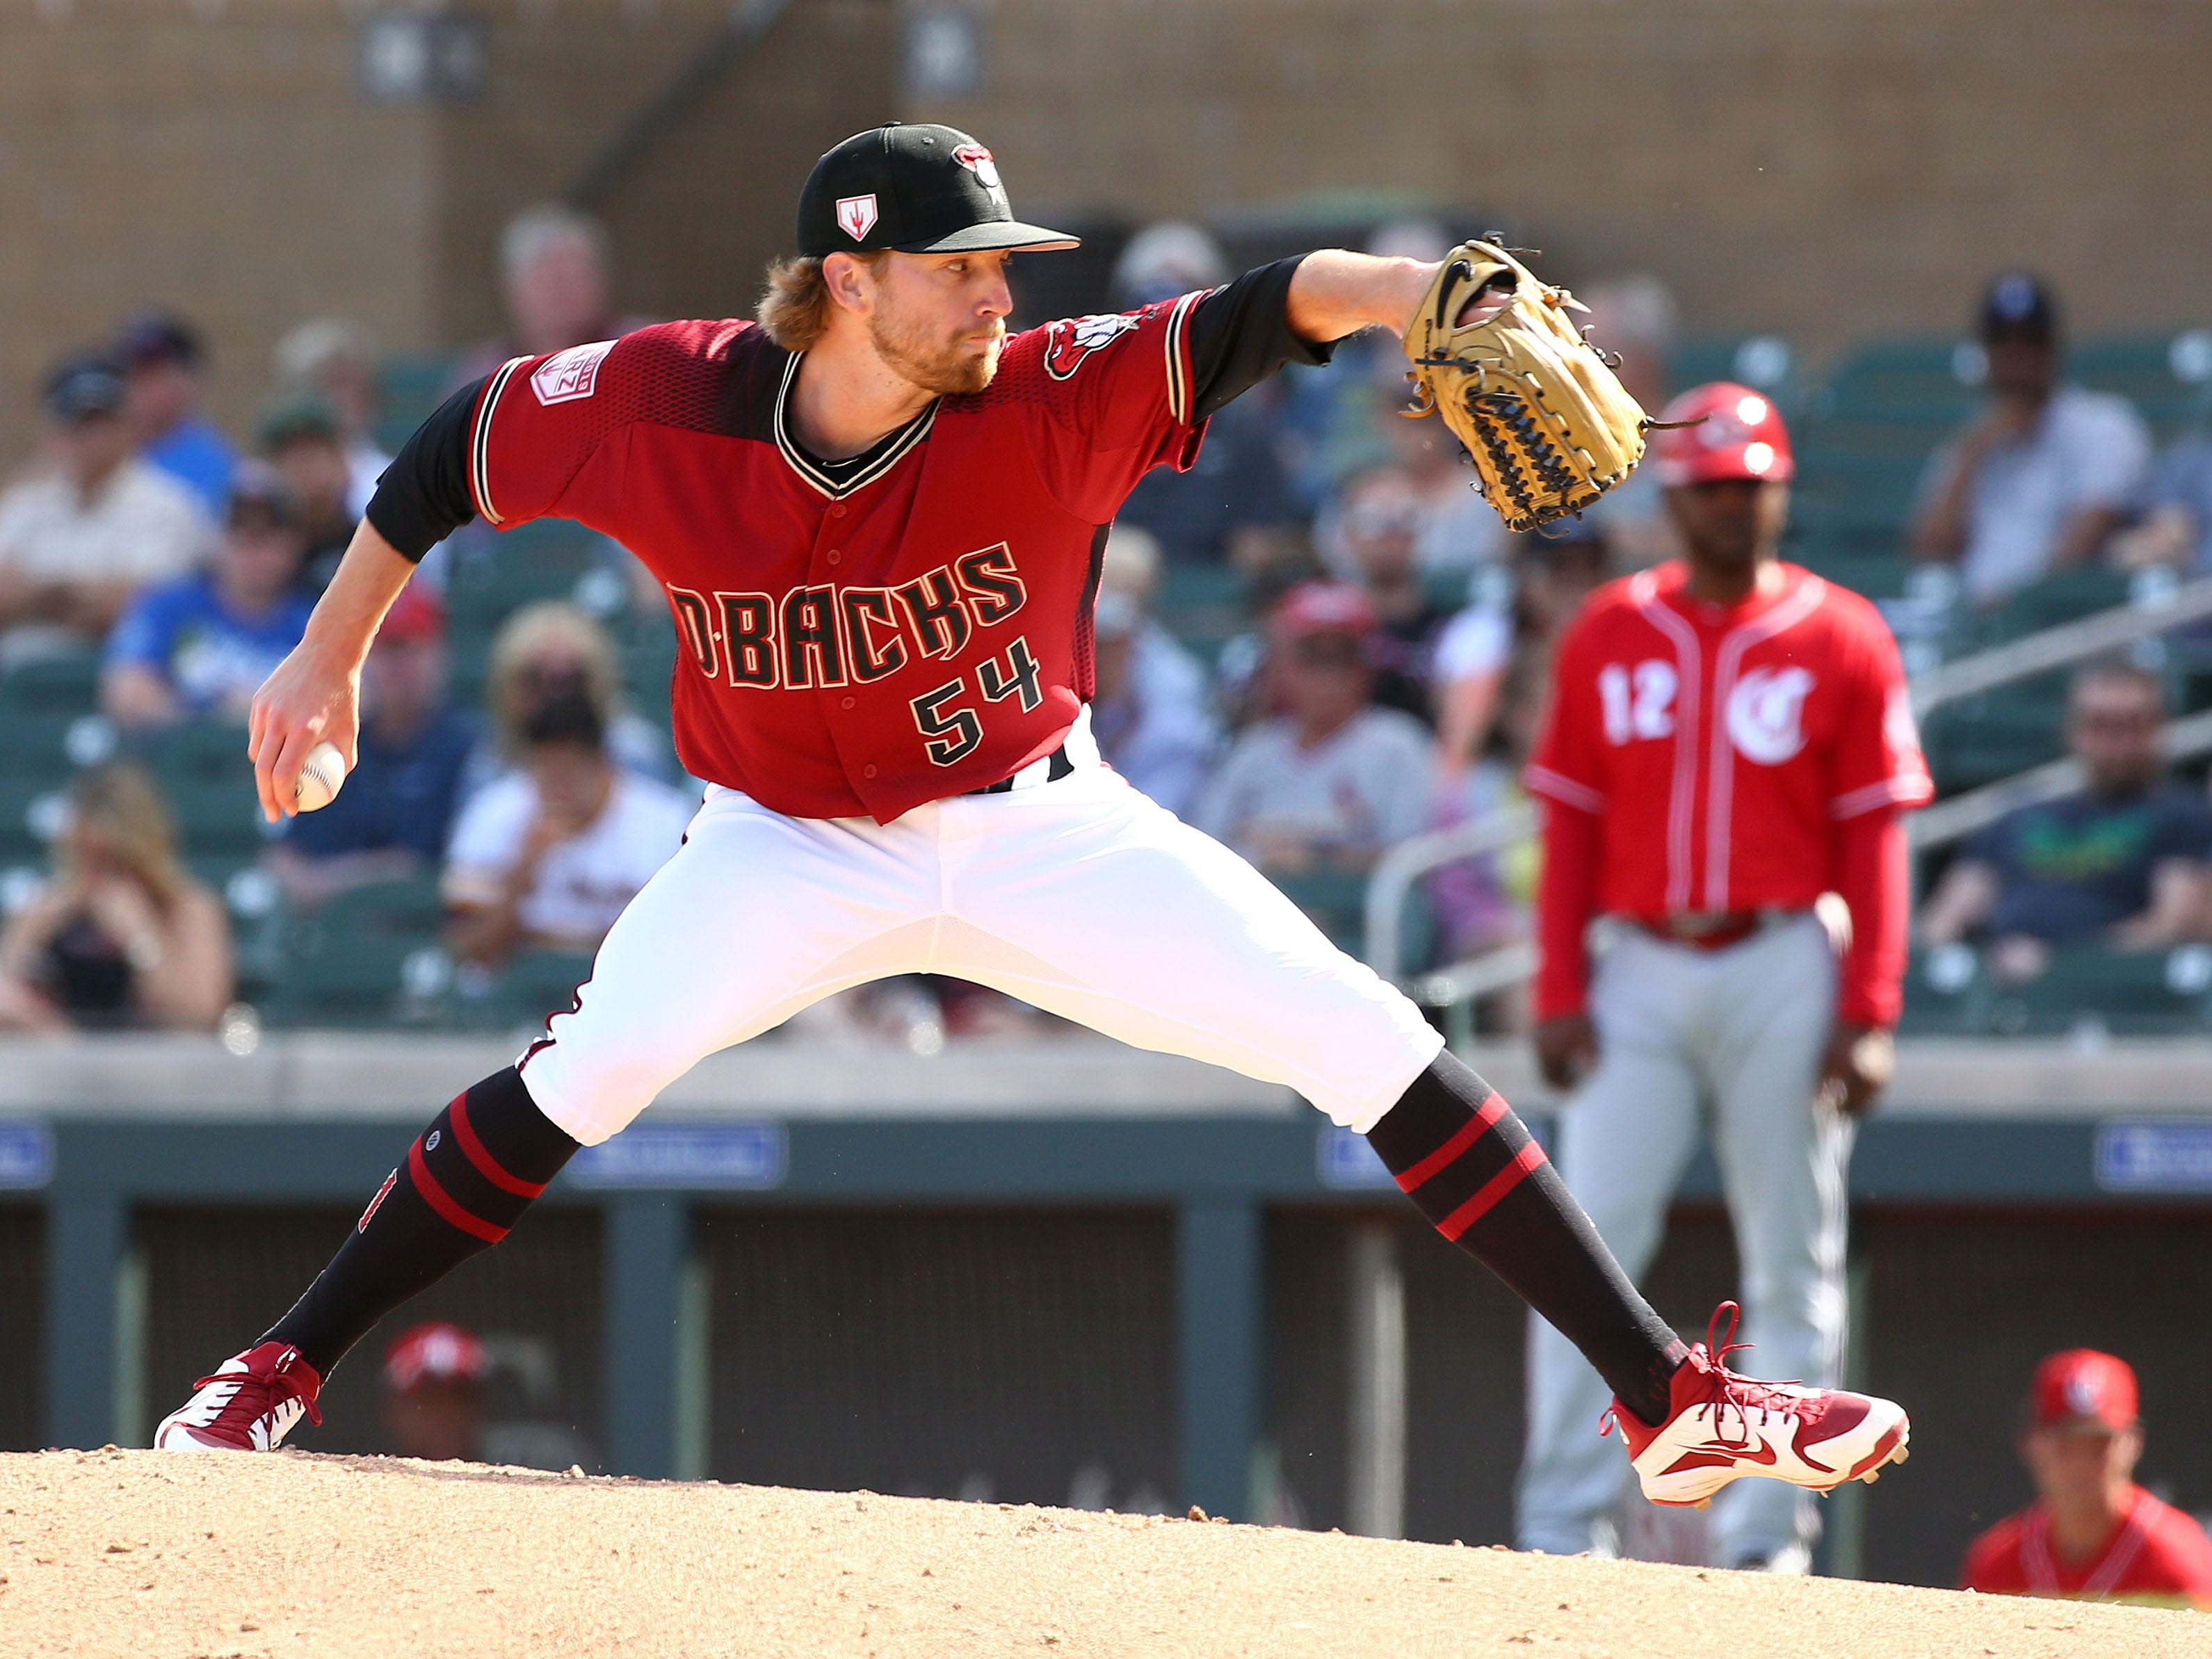 Arizona Diamondbacks pitcher Jimmie Sherfy (54) throws to the Cincinnati Reds in the fifth inning during a spring training game on Mar. 4, 2019, at Salt River Fields in Scottsdale, Ariz.